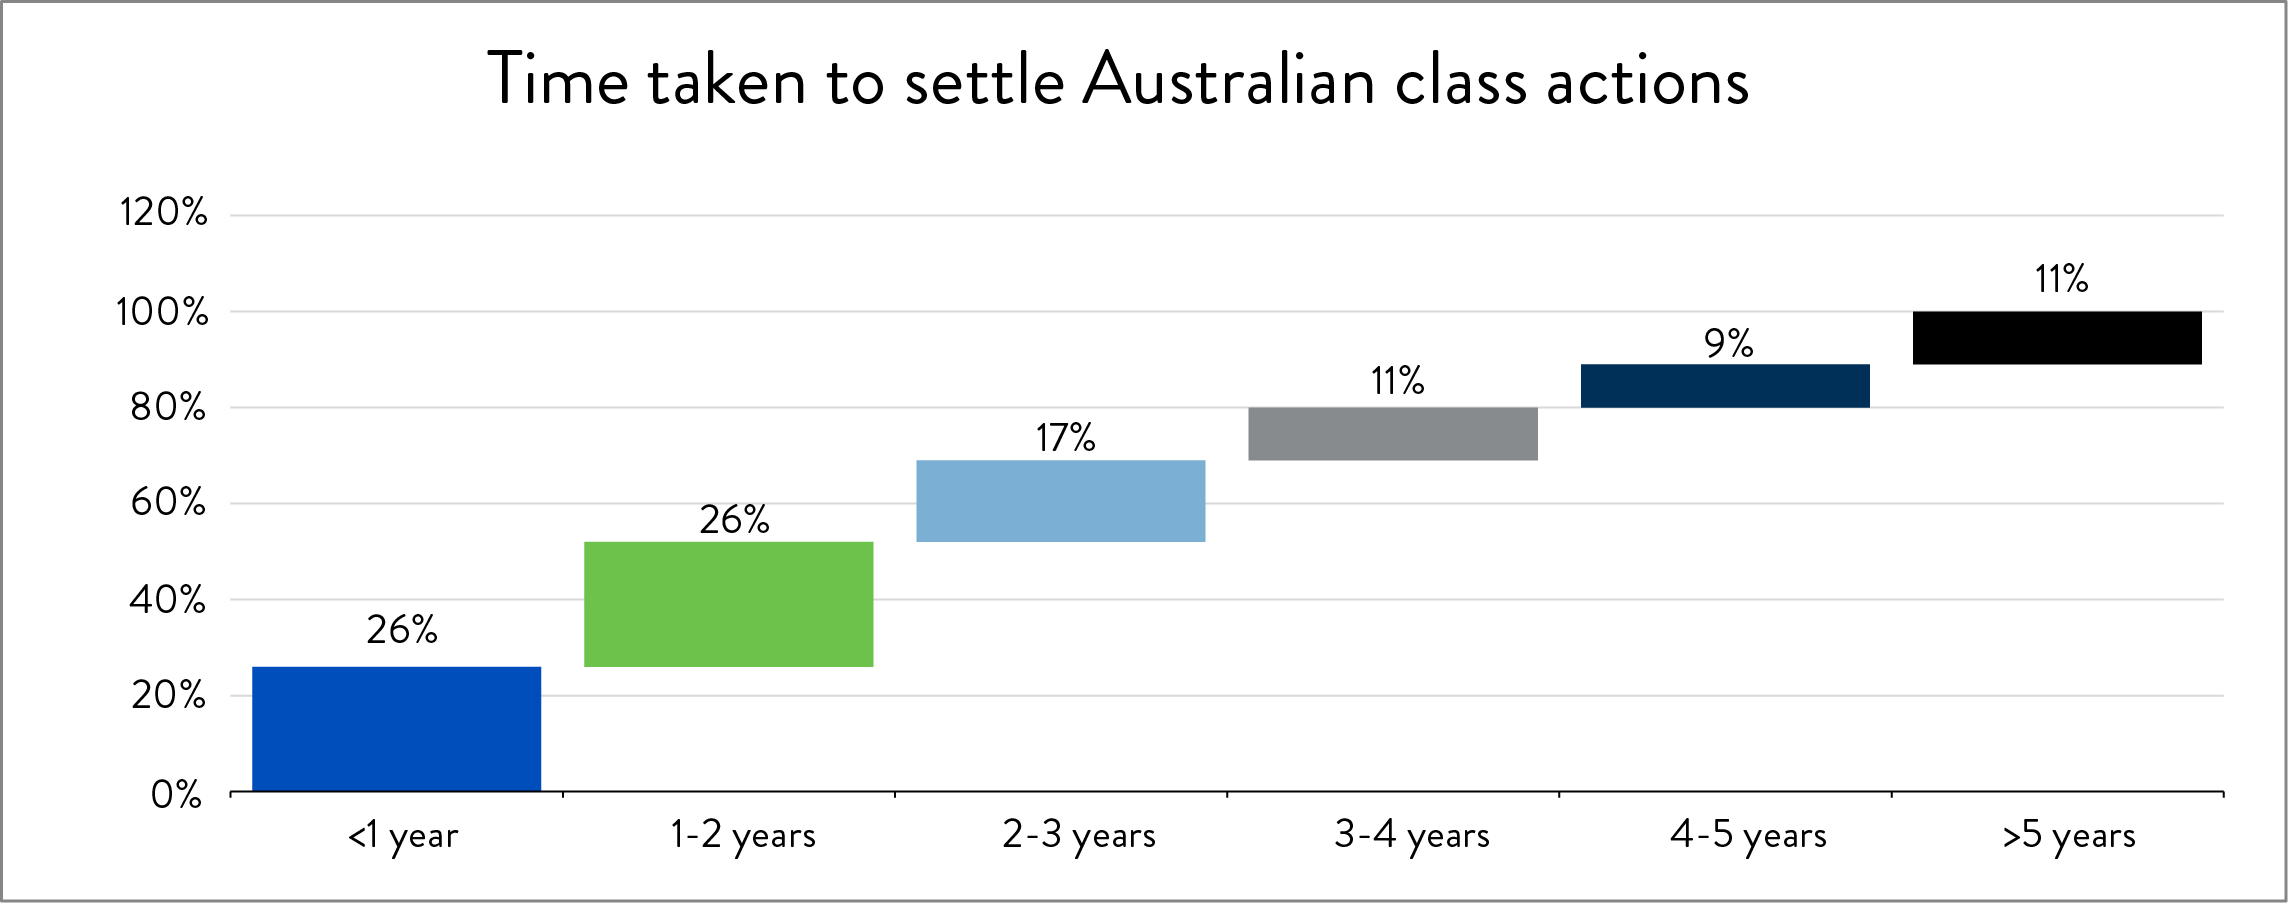 Time taken to Settle Australian Class Actions.png